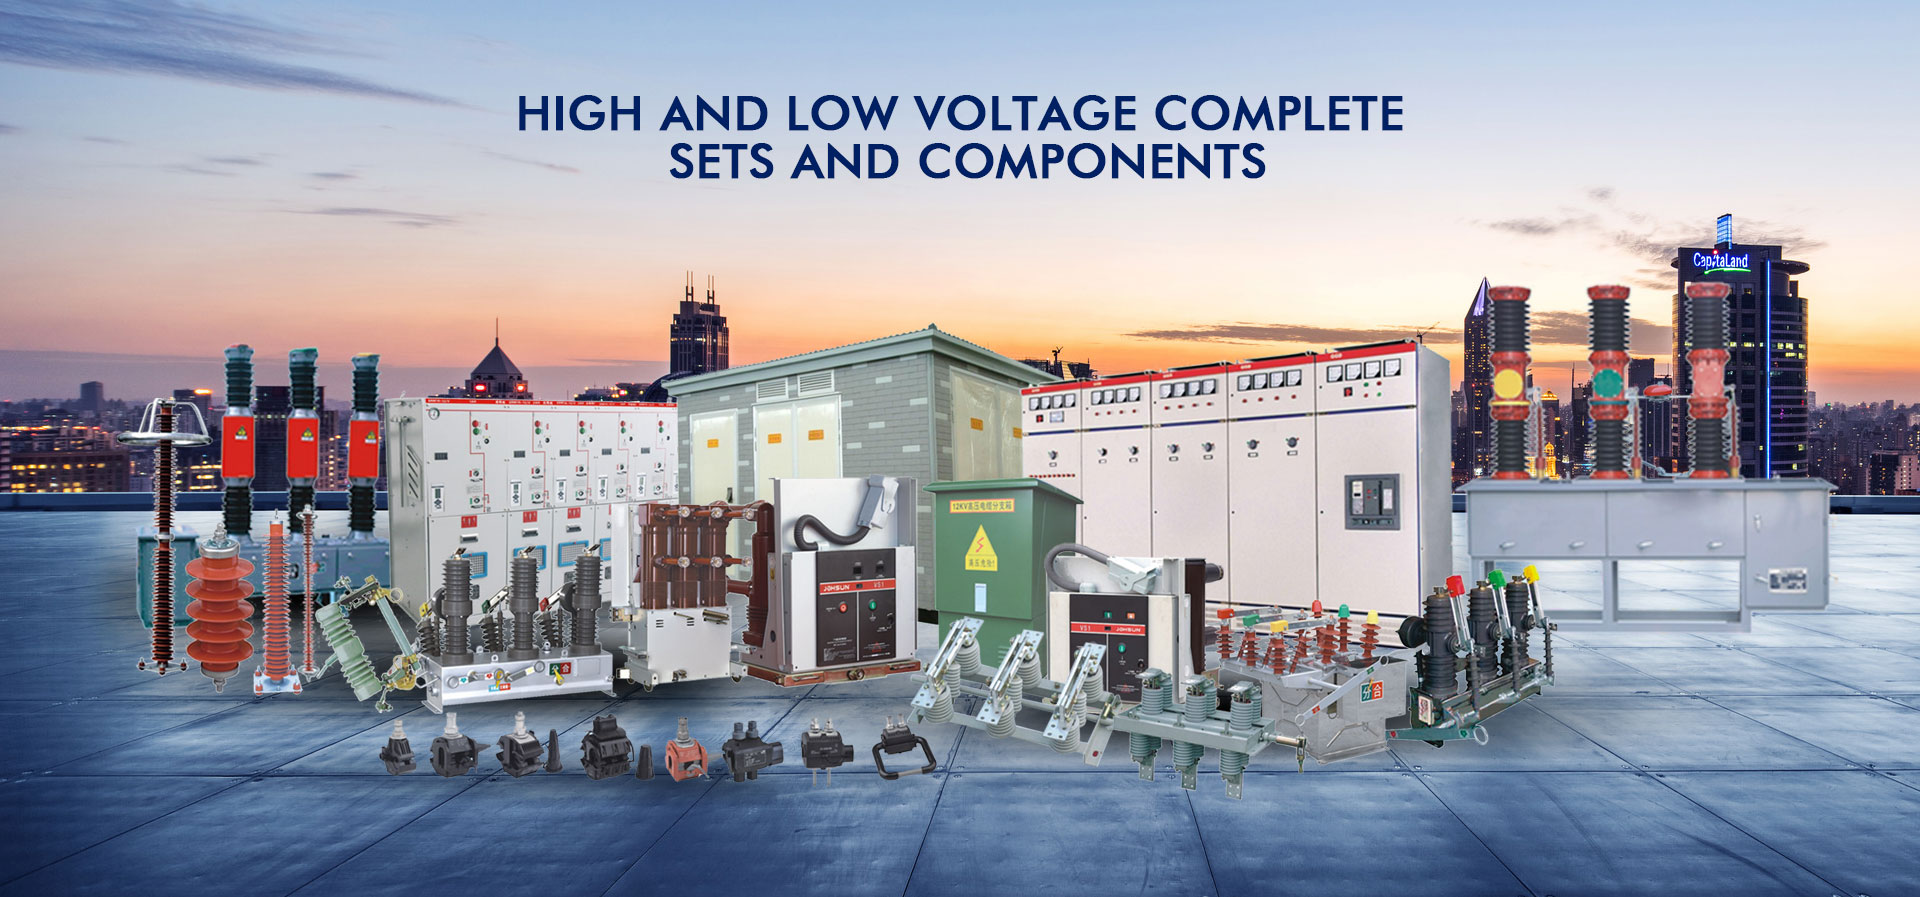 high and low voltage completeset and components